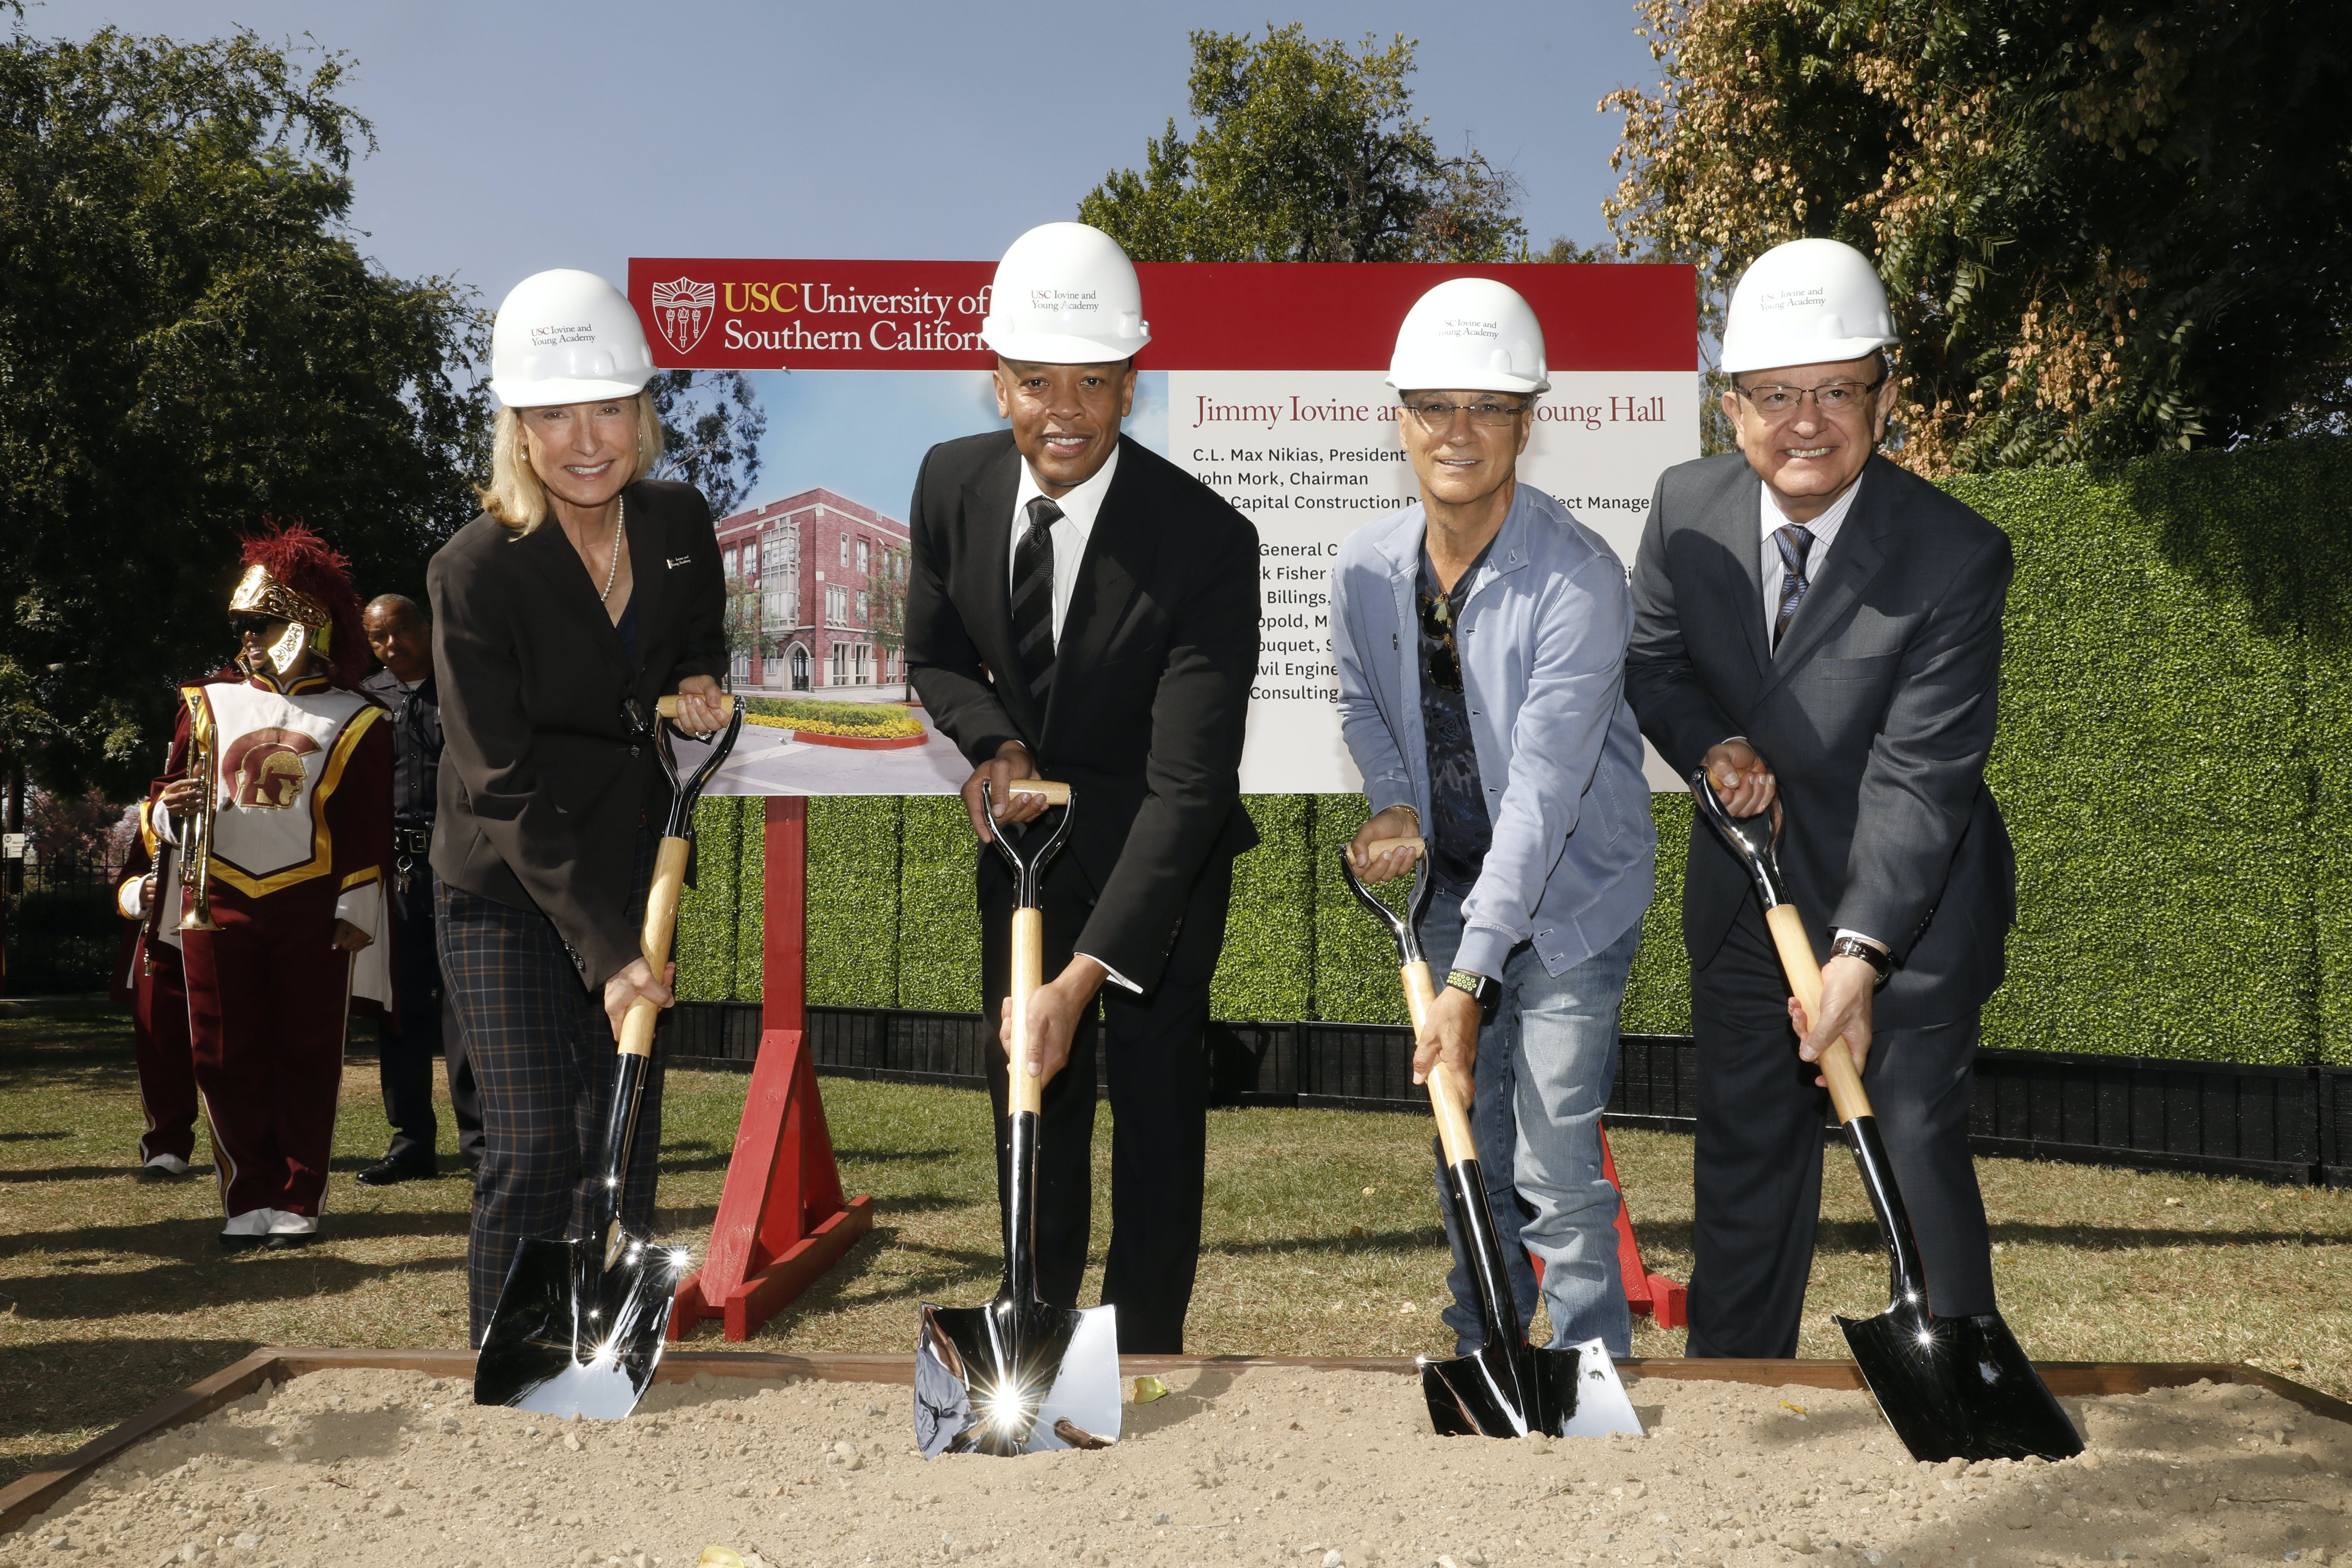 3 males and 1 female wearing white hard hats and holding shovels ready to break ground